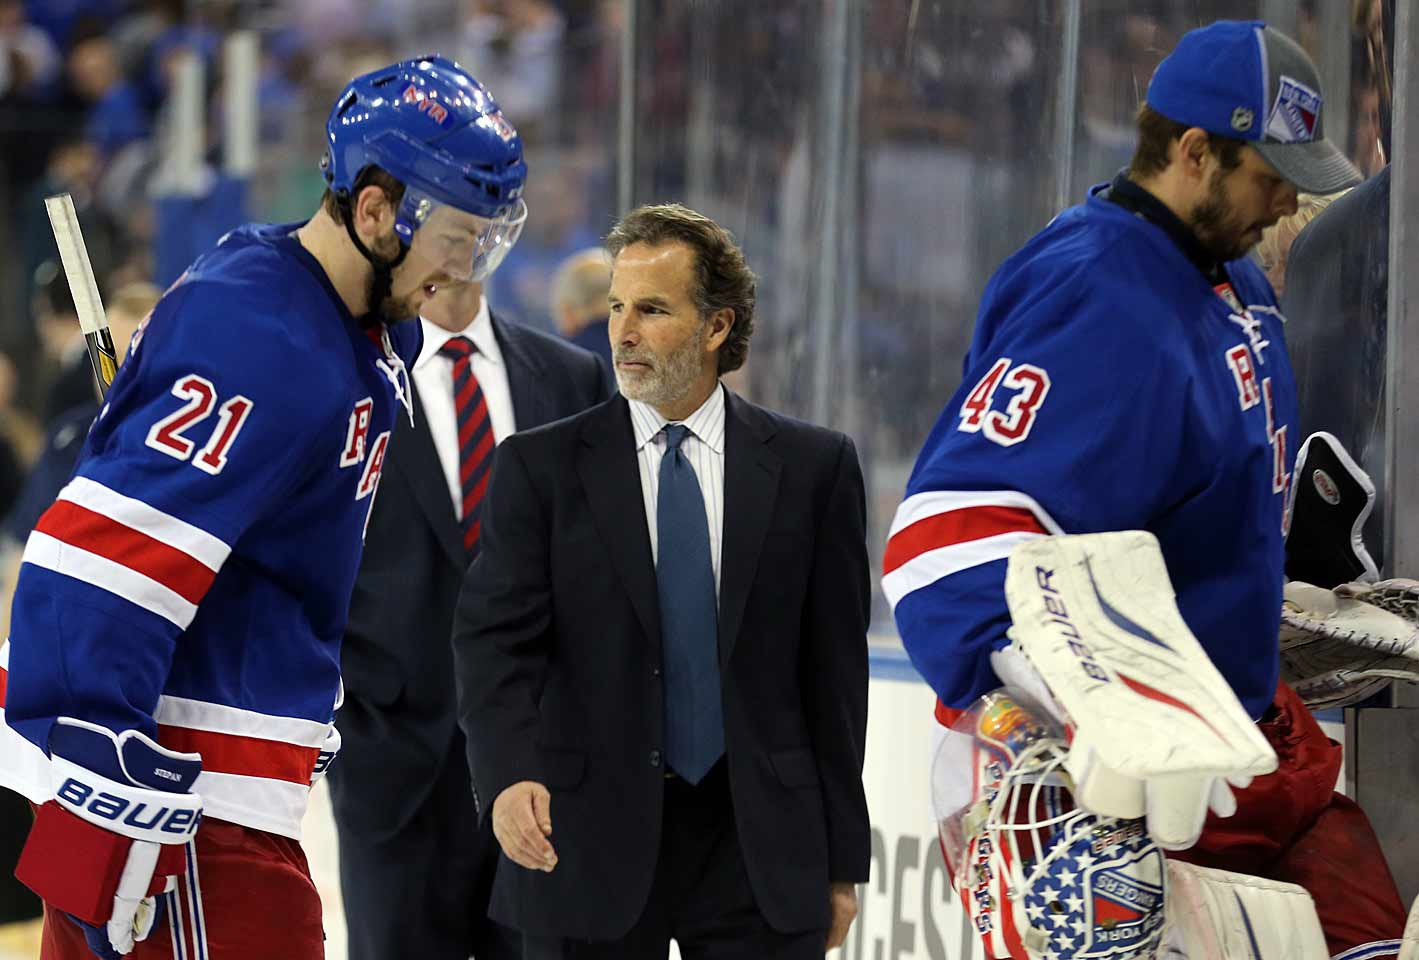 """We sucked from head to toe and we need to move by it.""— after his Rangers lost 2-0 to the Oilers on Oct. 22, 2011. Also: ""We sucked, and we sucked at a time that you can't suck.""—after a 3-1 loss to the Sabres on March 12, 2013"